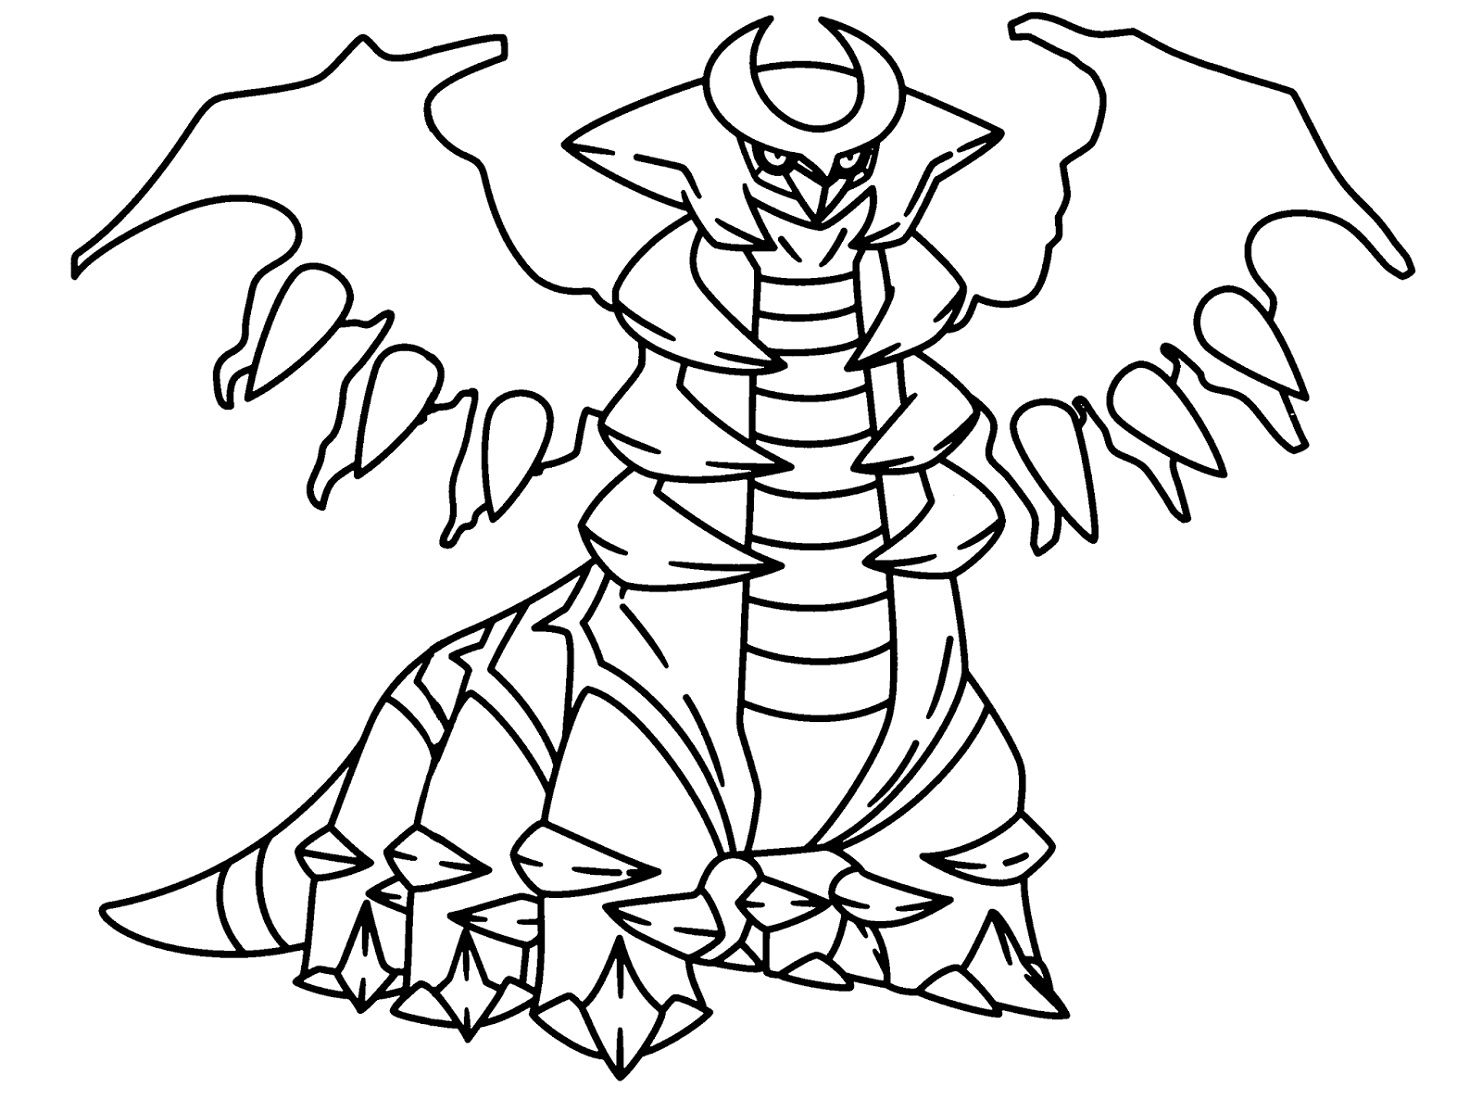 free coloring pokemon pages pokemon coloring pages join your favorite pokemon on an pokemon coloring free pages 1 1